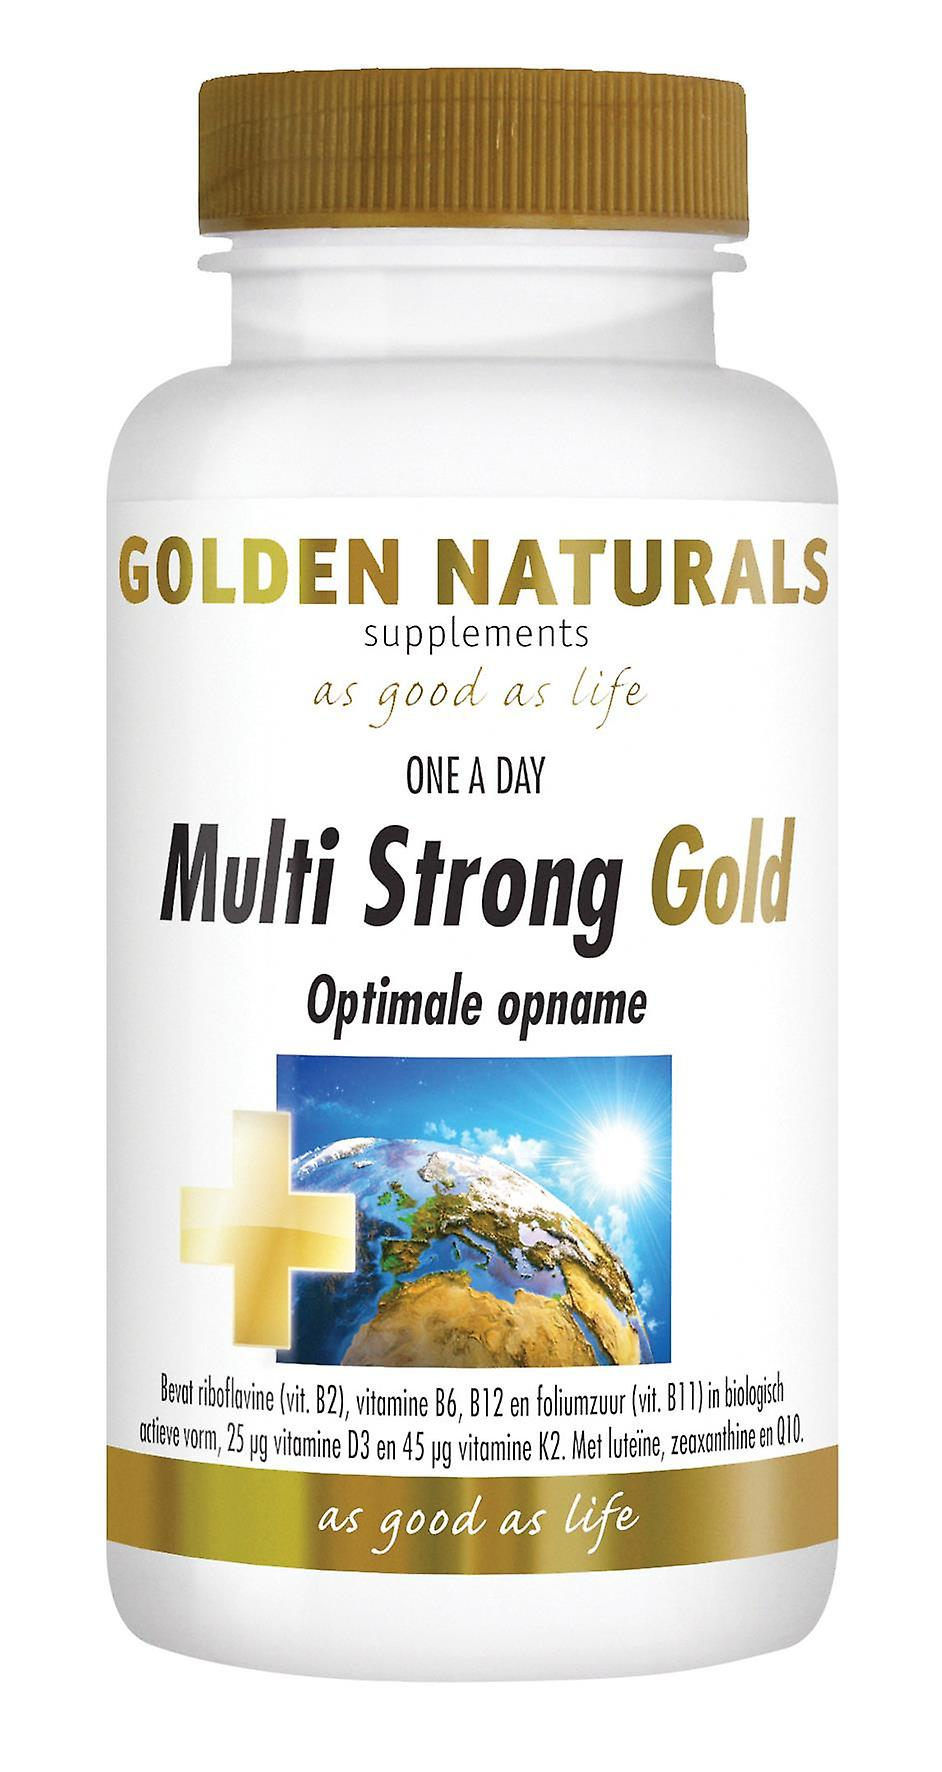 Golden Naturals Multi Strong Gold (30 tablets)